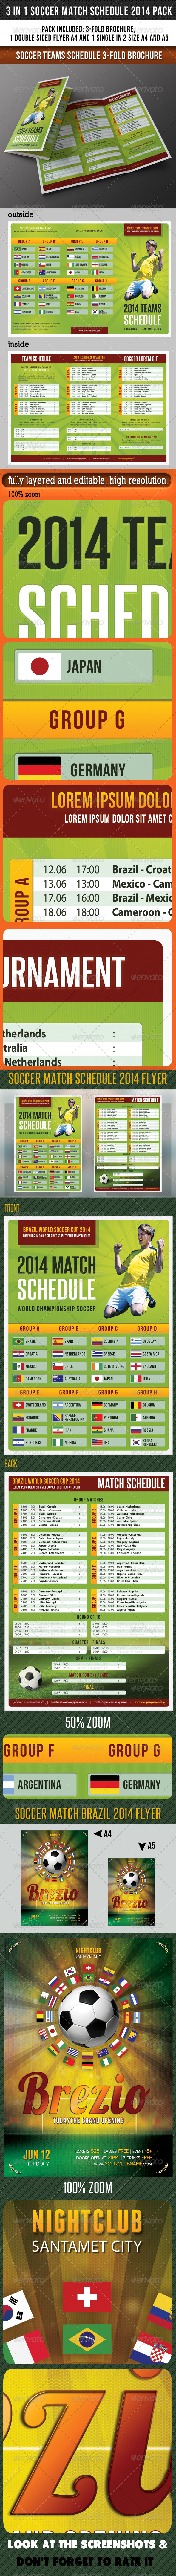 GraphicRiver 3 in 1 Soccer Match Schedule 2014 Pack 7795491